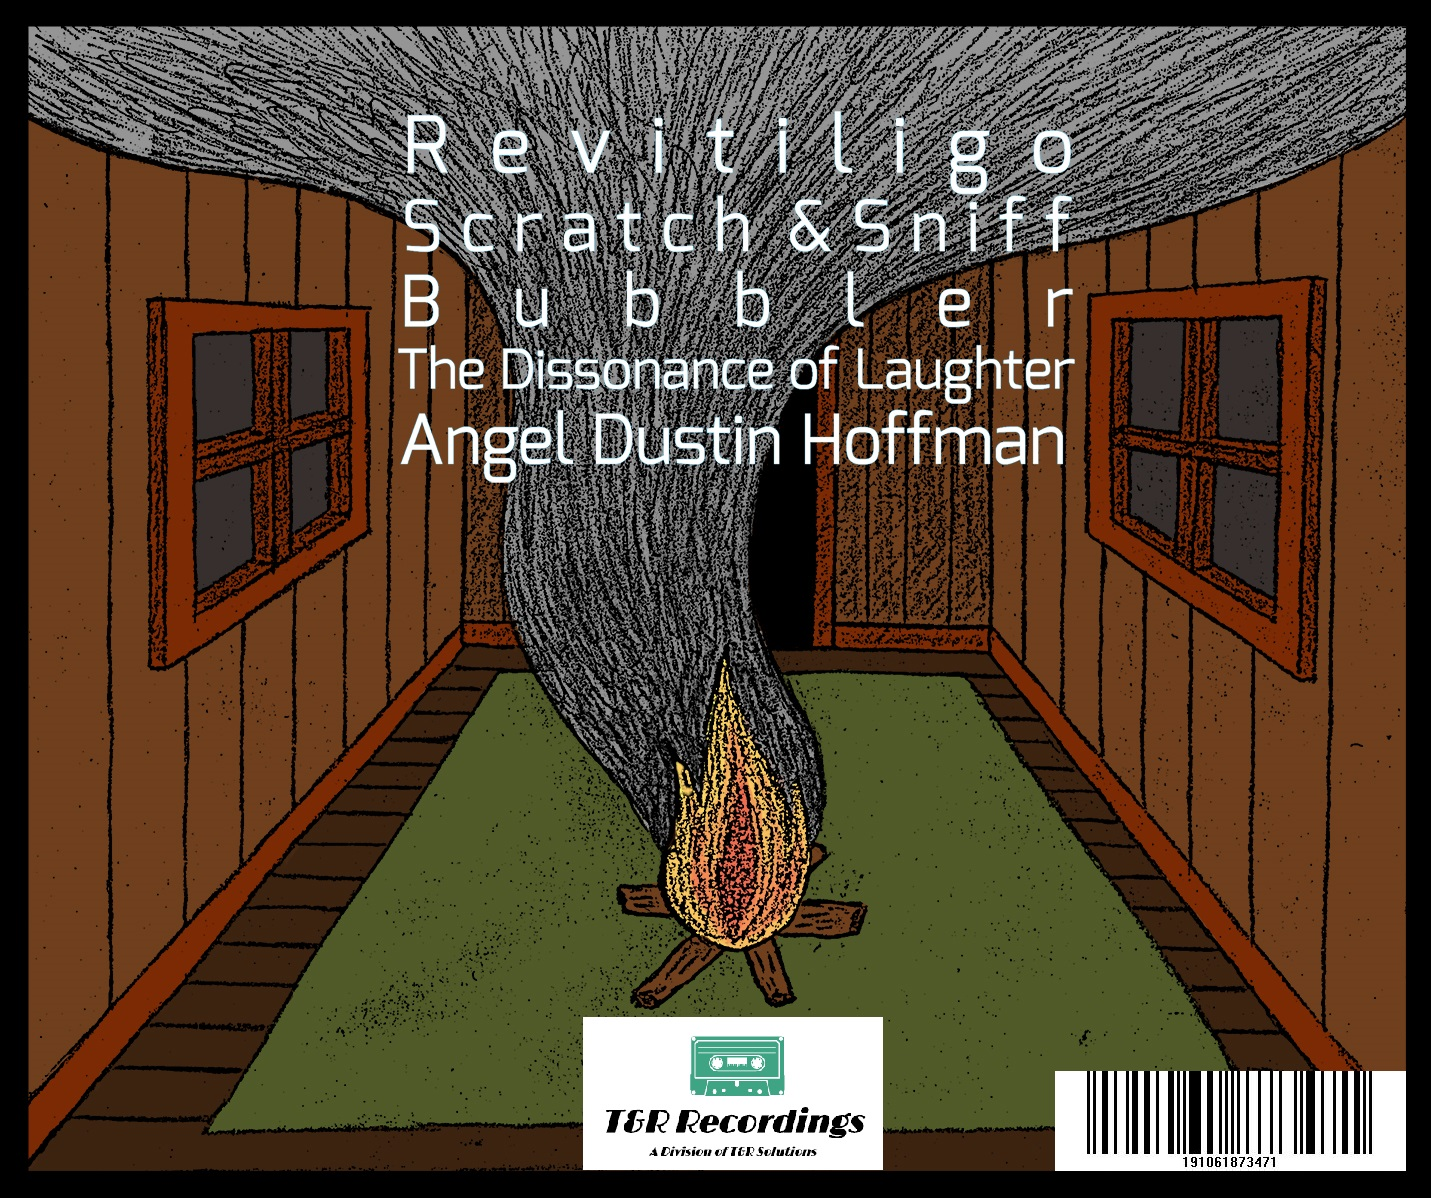 T&R Recordings Artist: Beau (I Guess...) Digital EP Back Cover